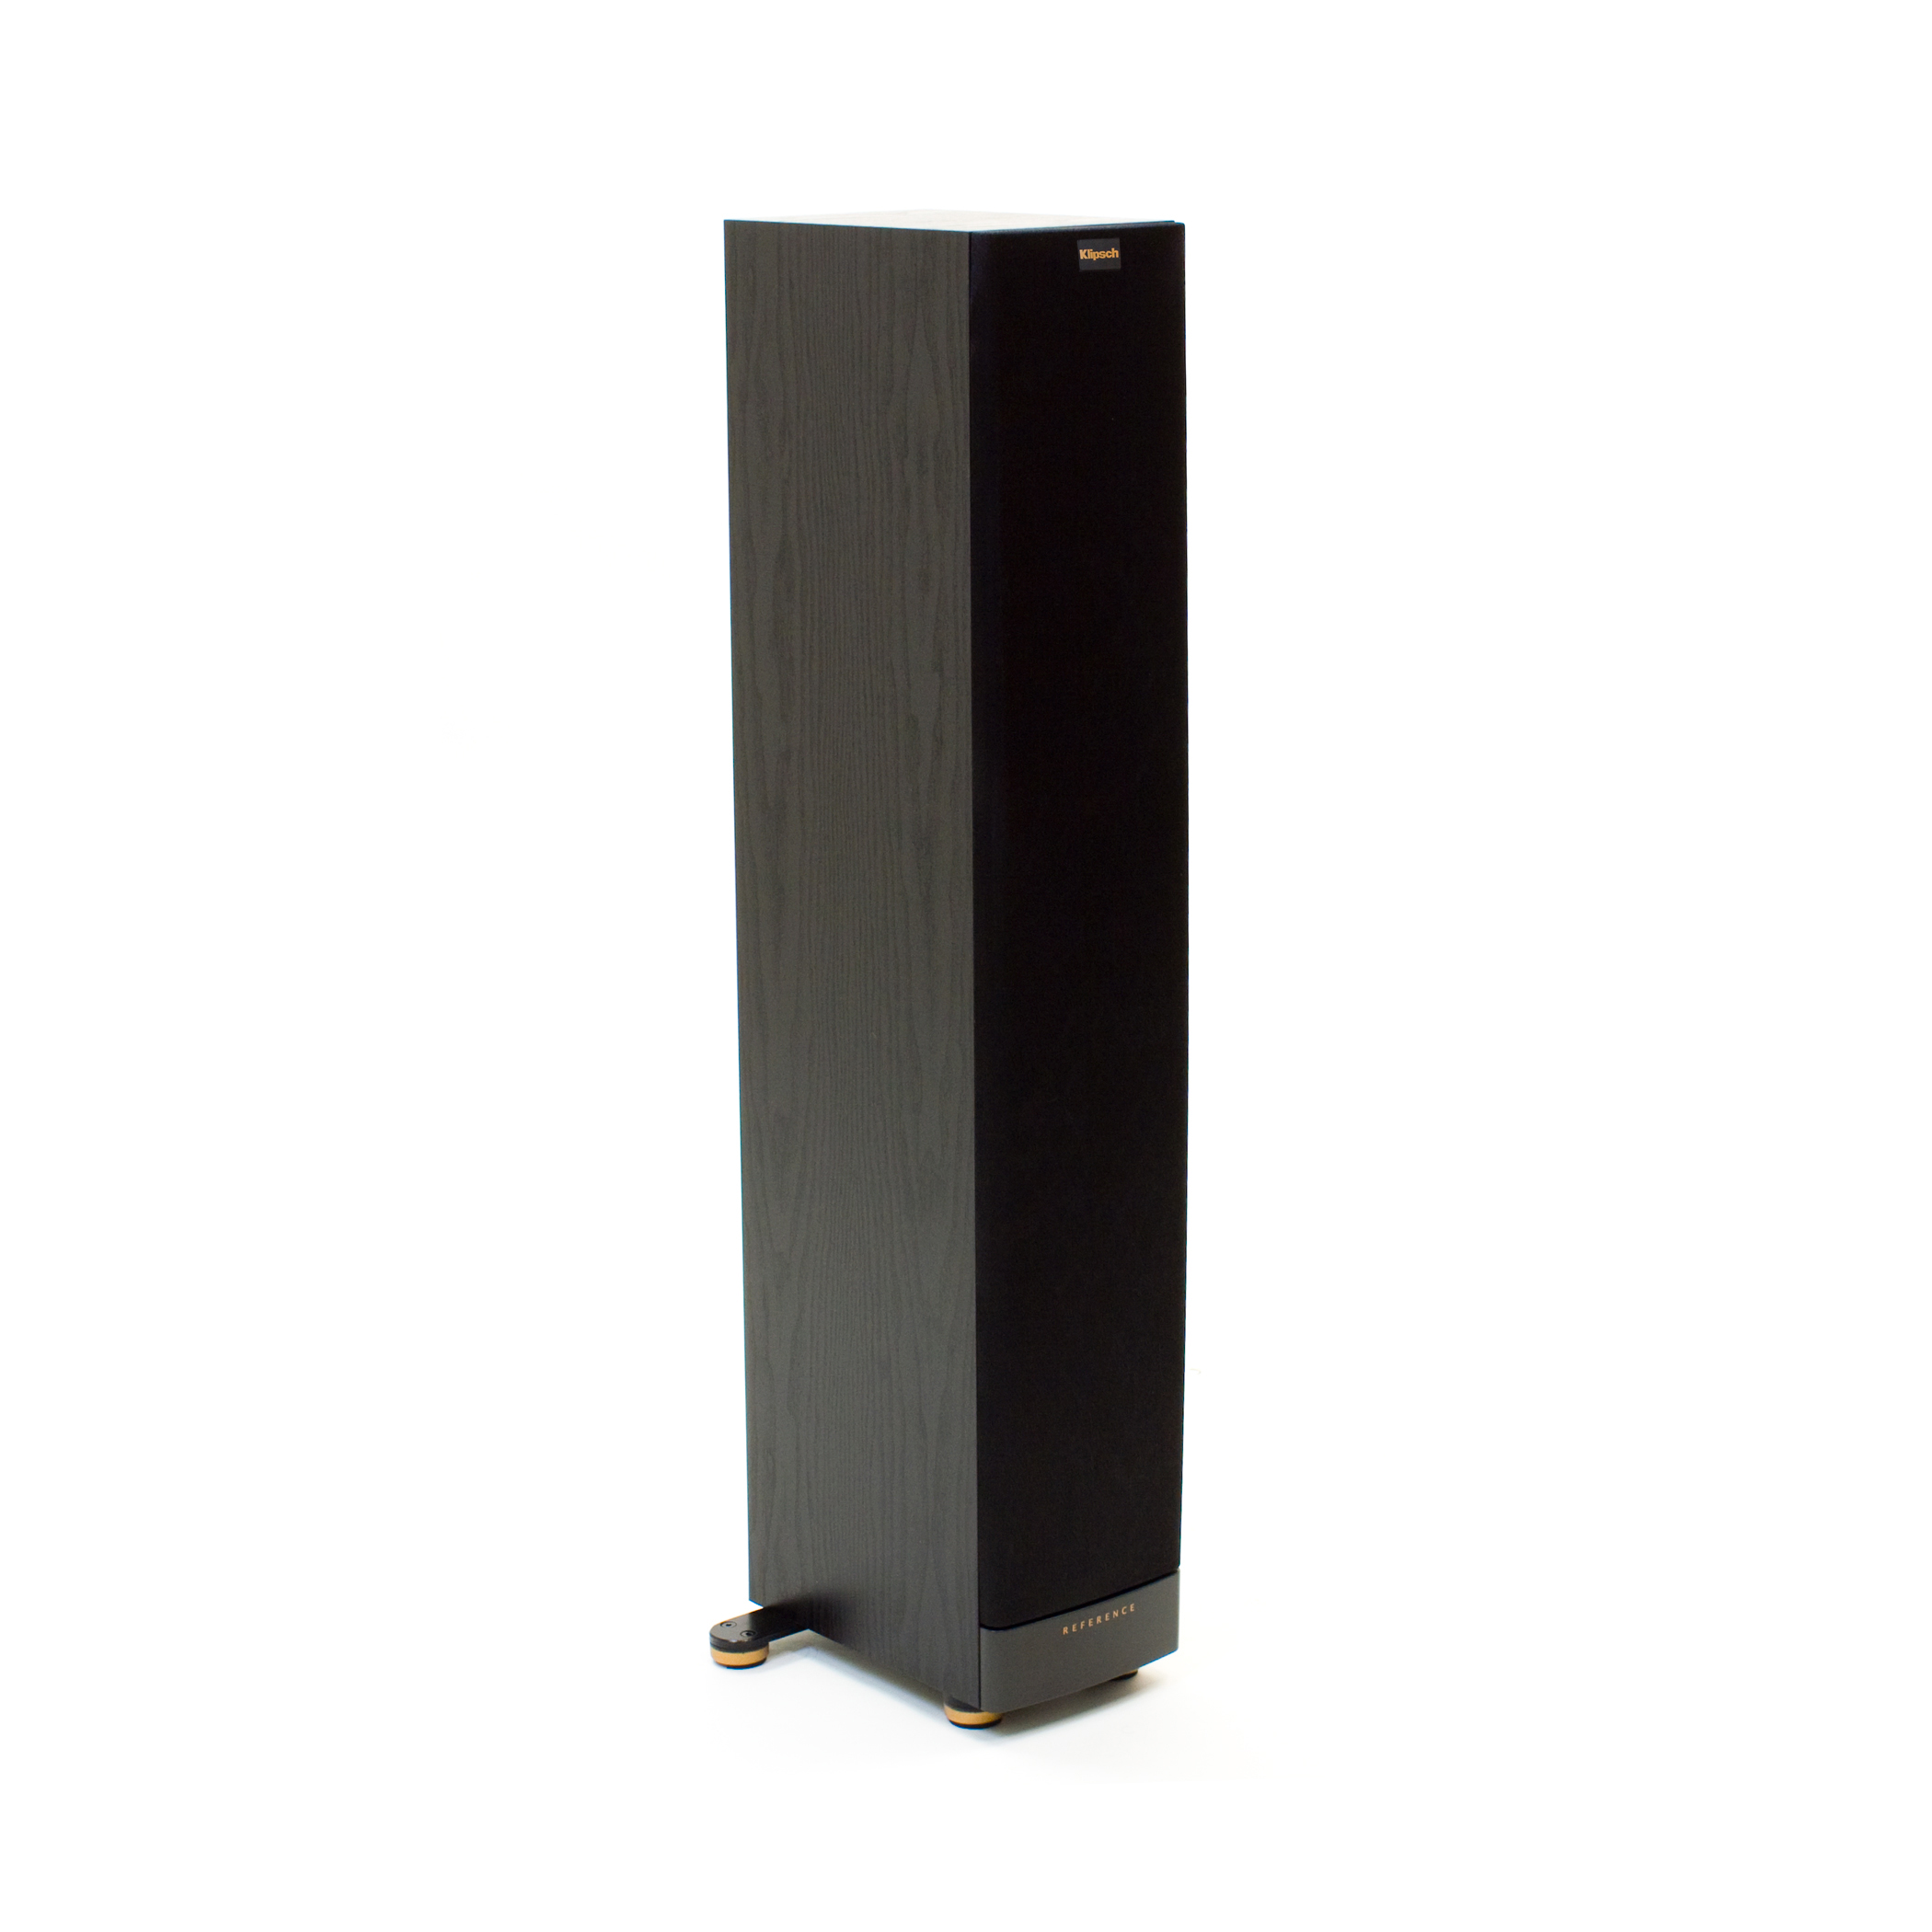 rf 42 ii floorstanding speaker klipsch new and improved